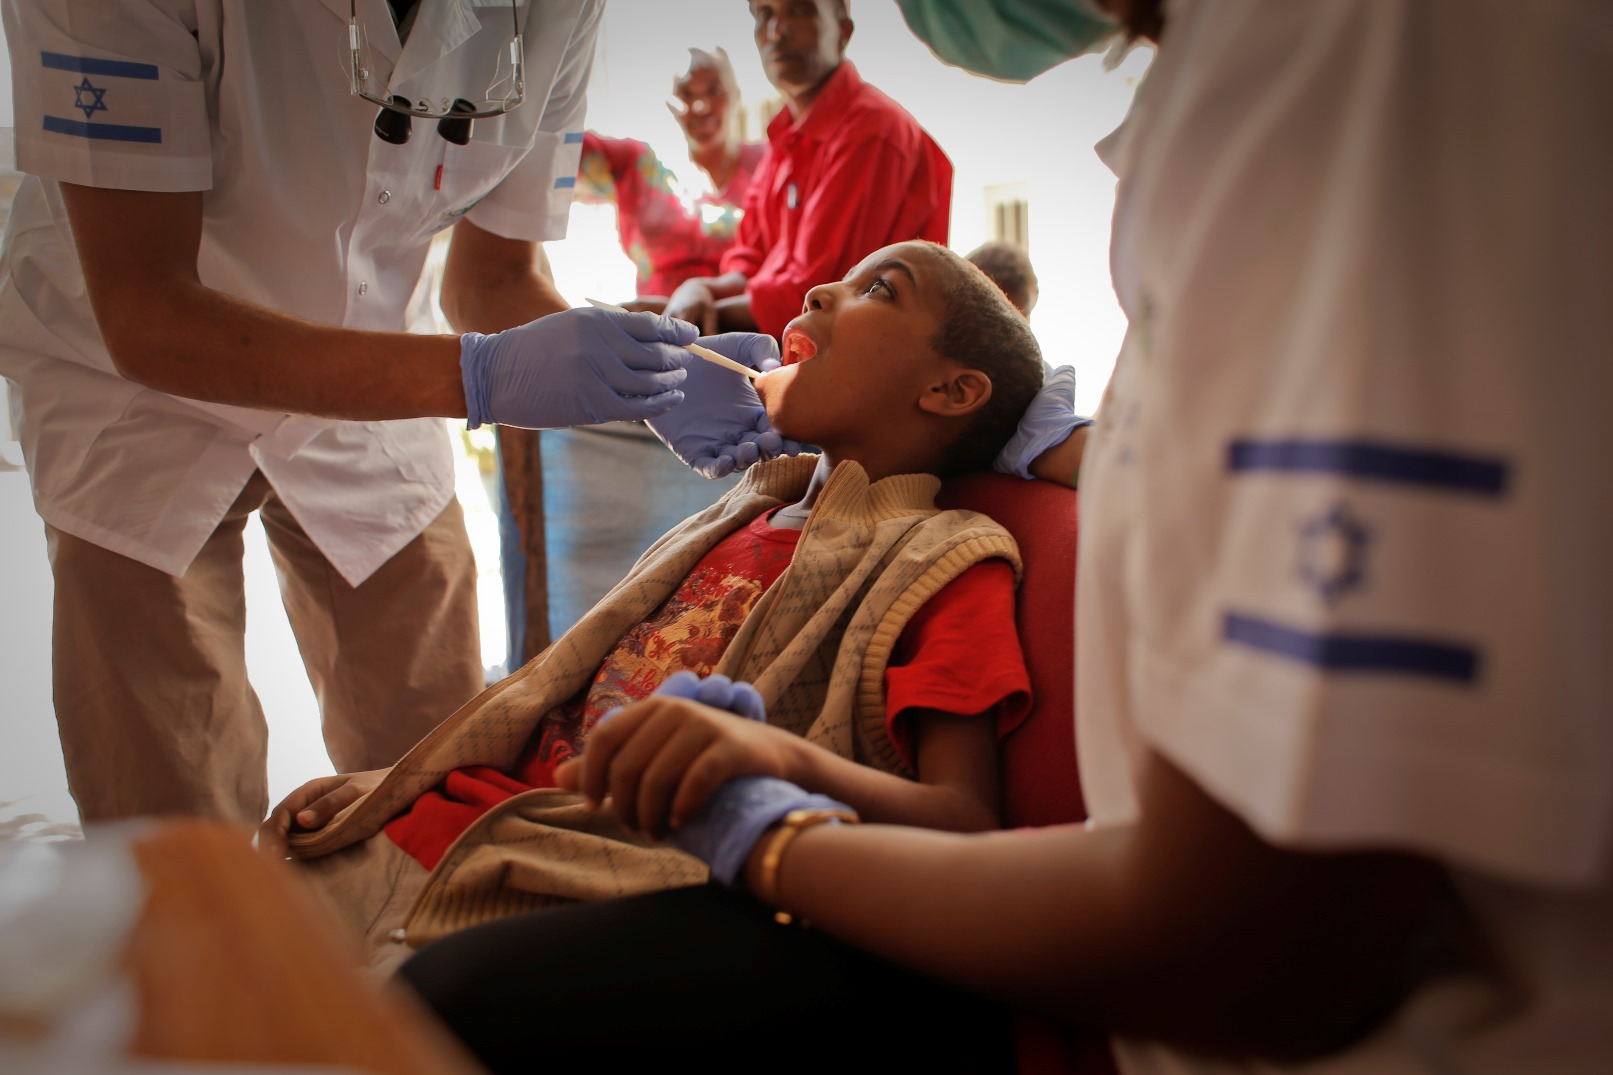 An Israeli dentist and post-army volunteer caring for a child in Ethiopia. Photo courtesy of FFL